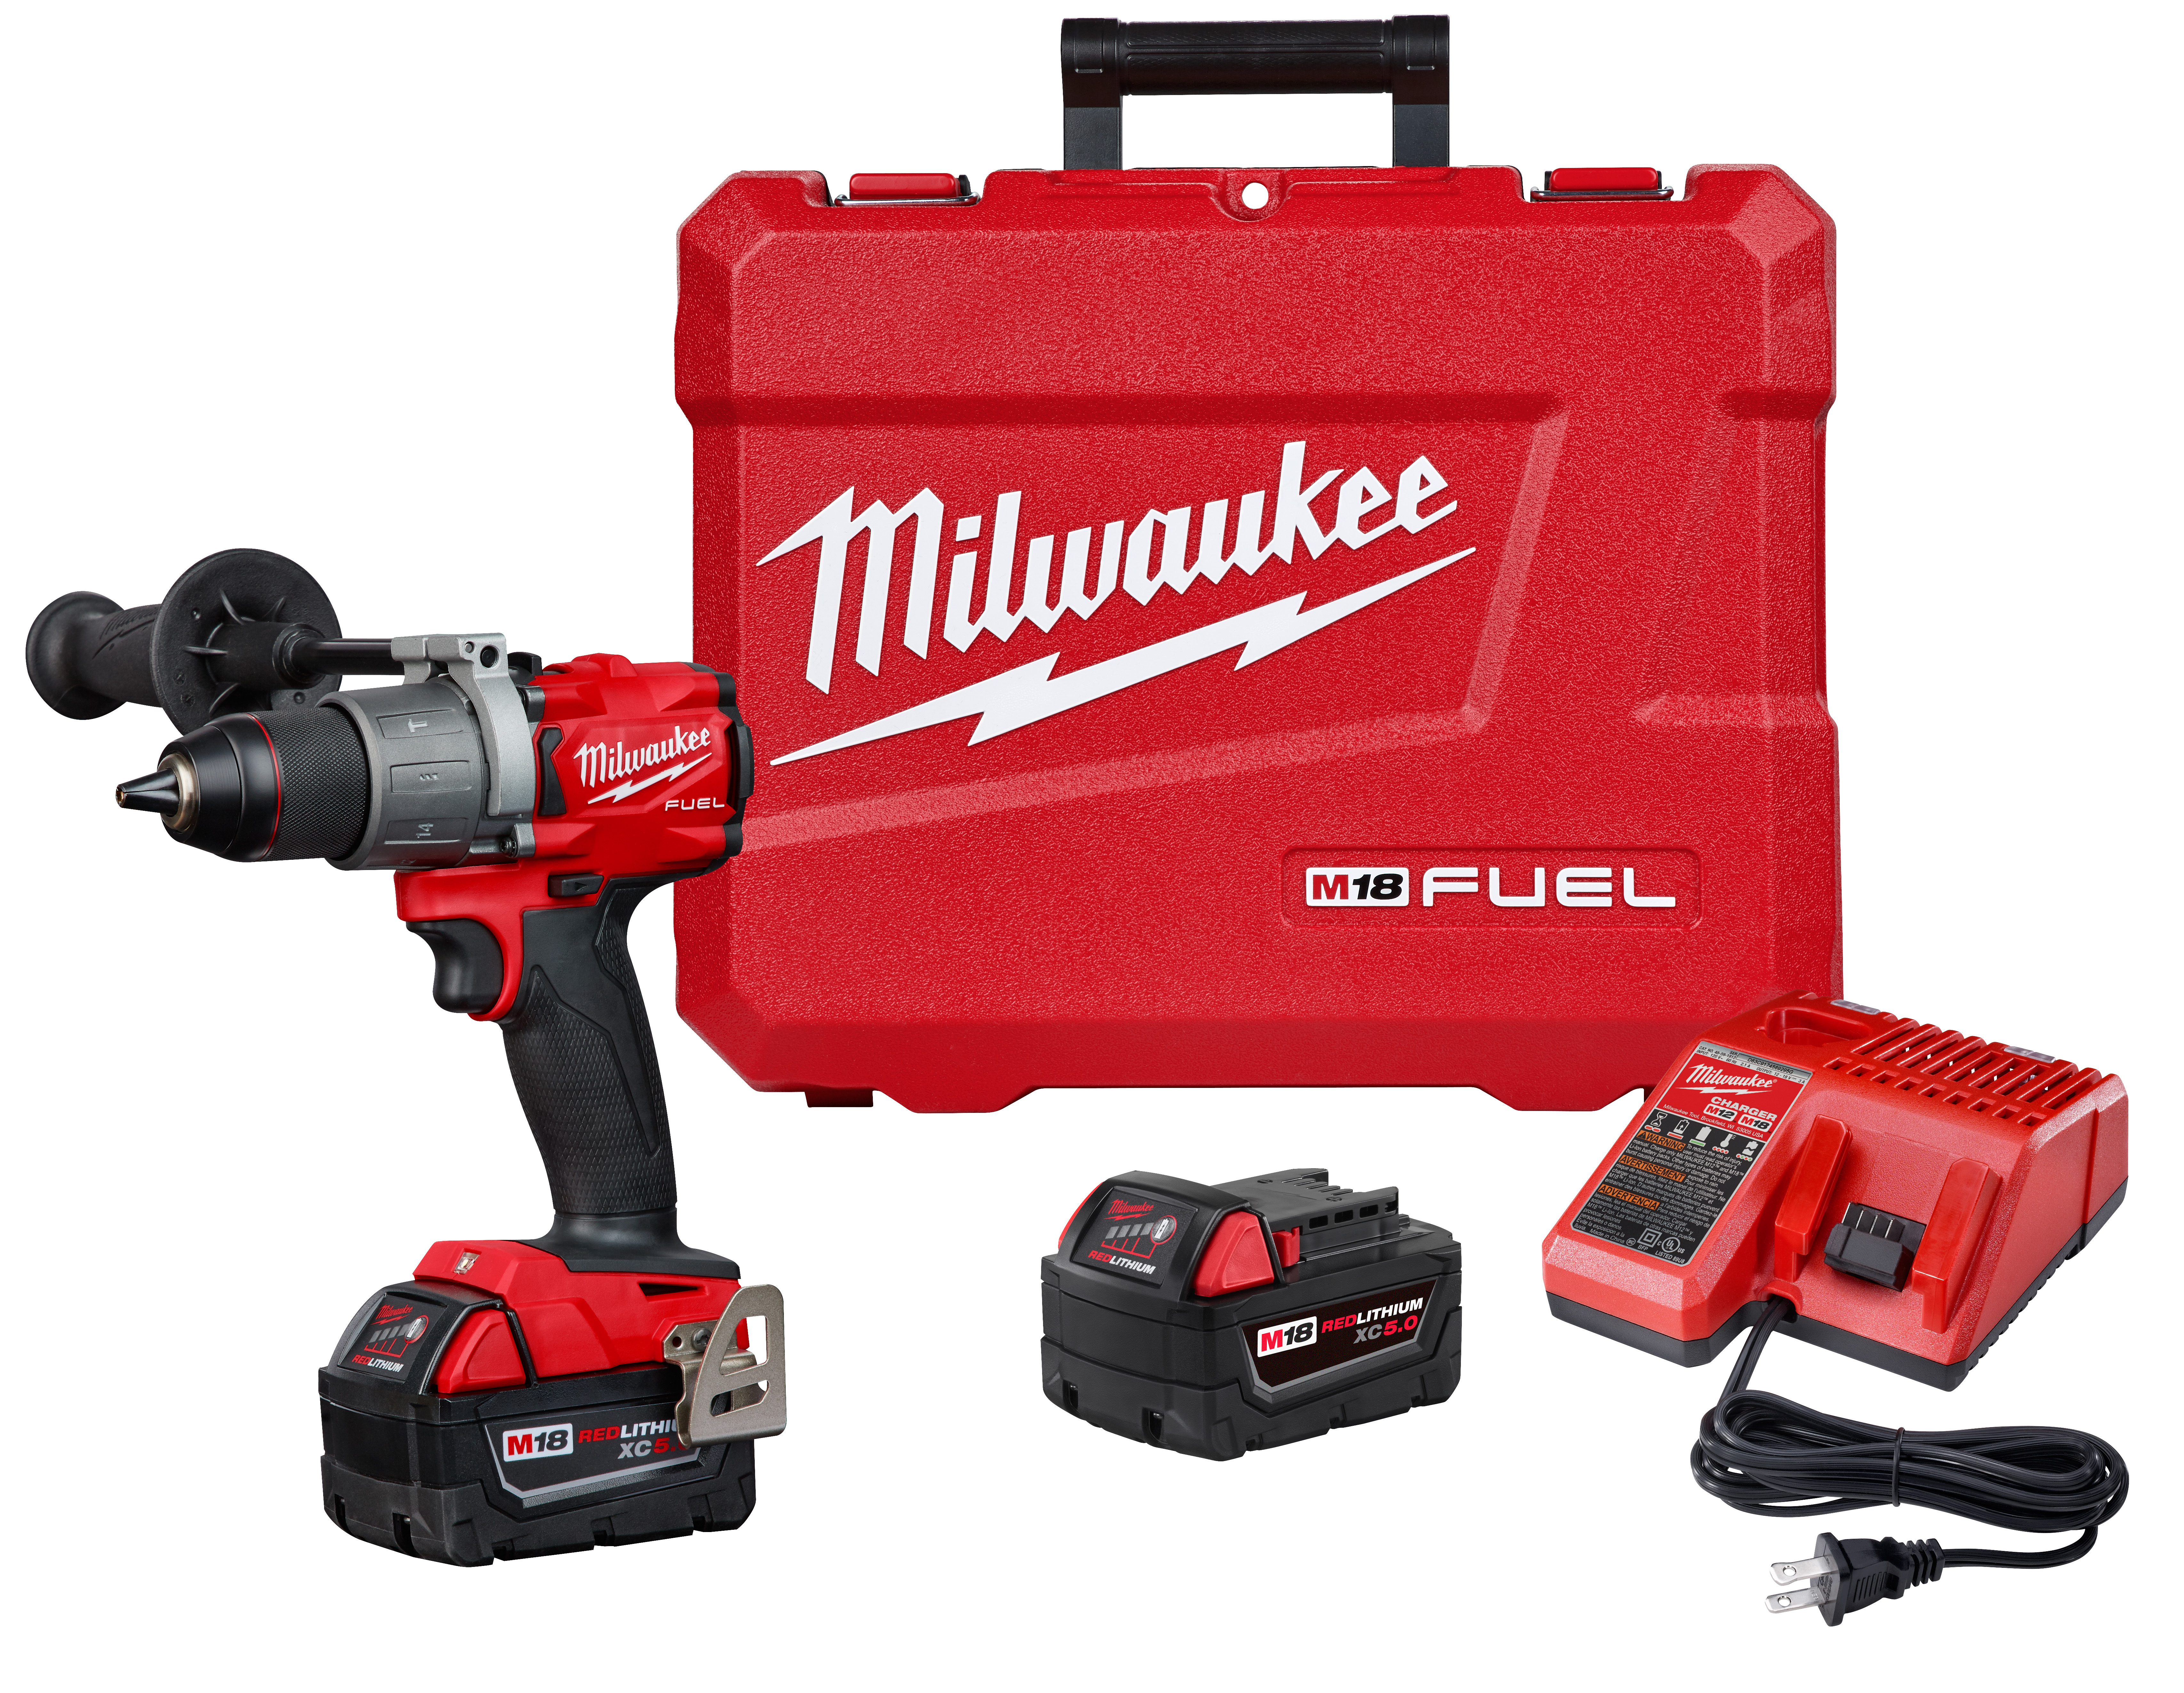 Milwaukee® M18™ FUEL™ 2804-22 Cordless Compact Lightweight Hammer Drill/Driver Kit, 1/2 in Hex Chuck, 18 VDC, 0 to 550 rpm, 0 to 2000 rpm No-Load, REDLITHIUM™ Battery